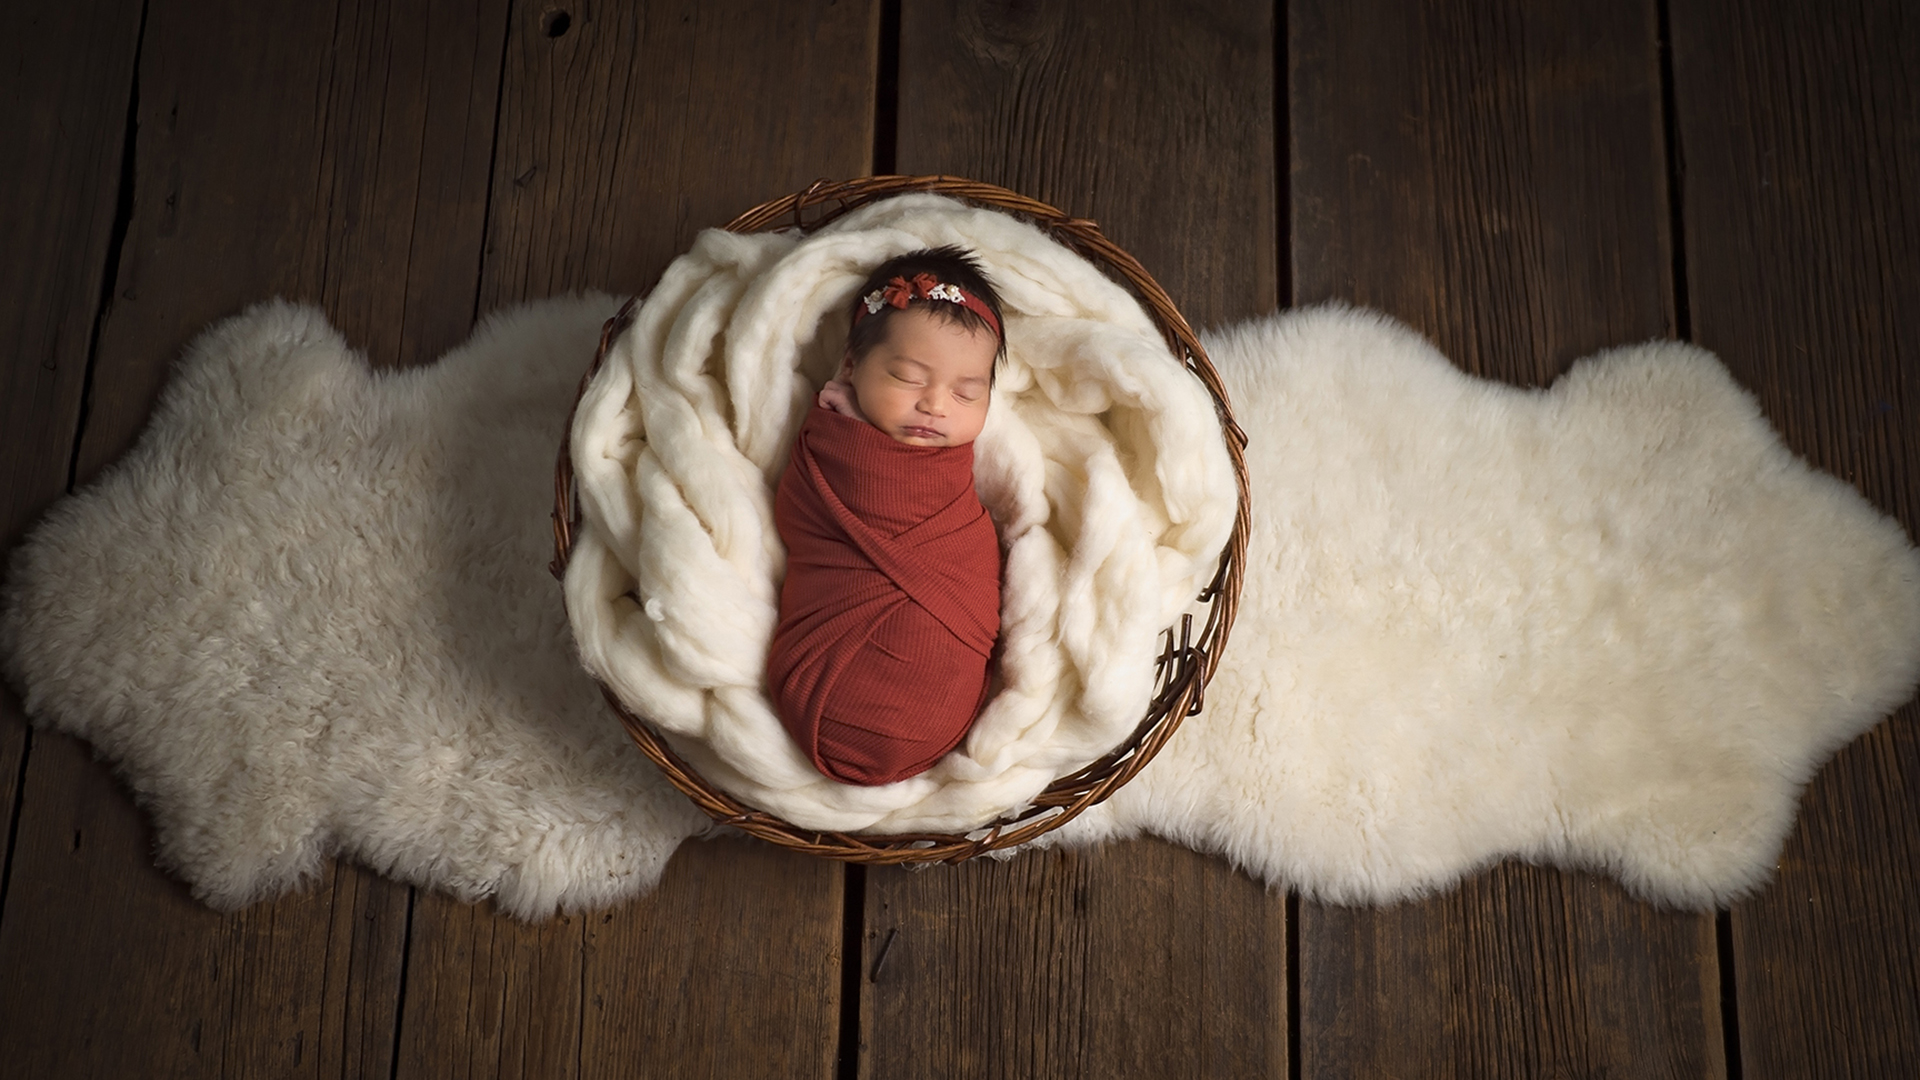 6 Tips for Getting Started in Newborn Photography   Photofocus